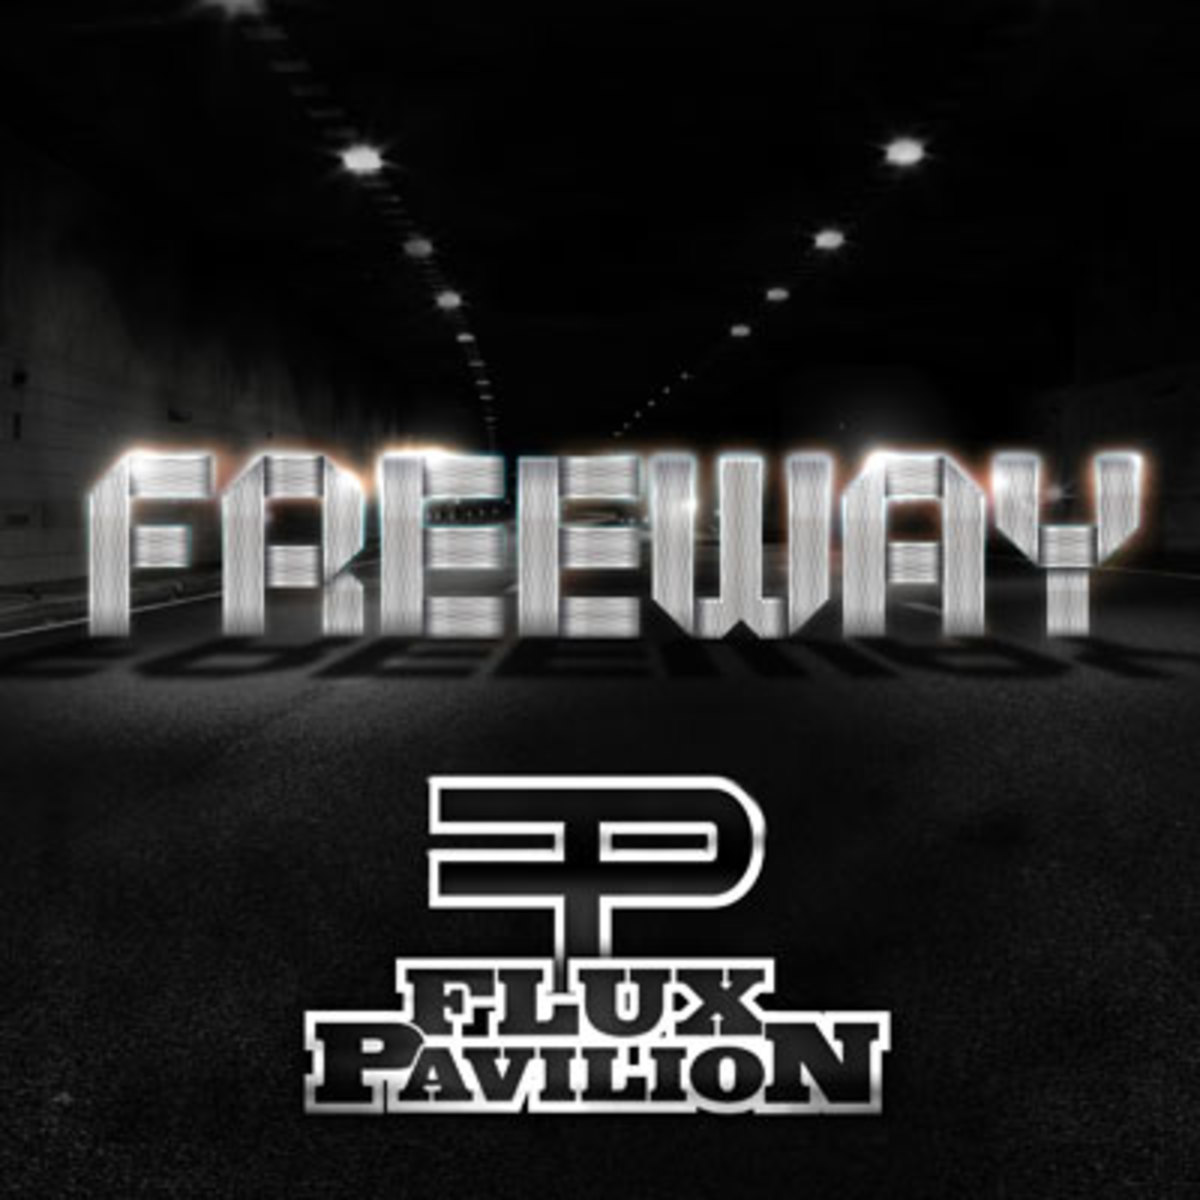 flux-freewayep.jpg